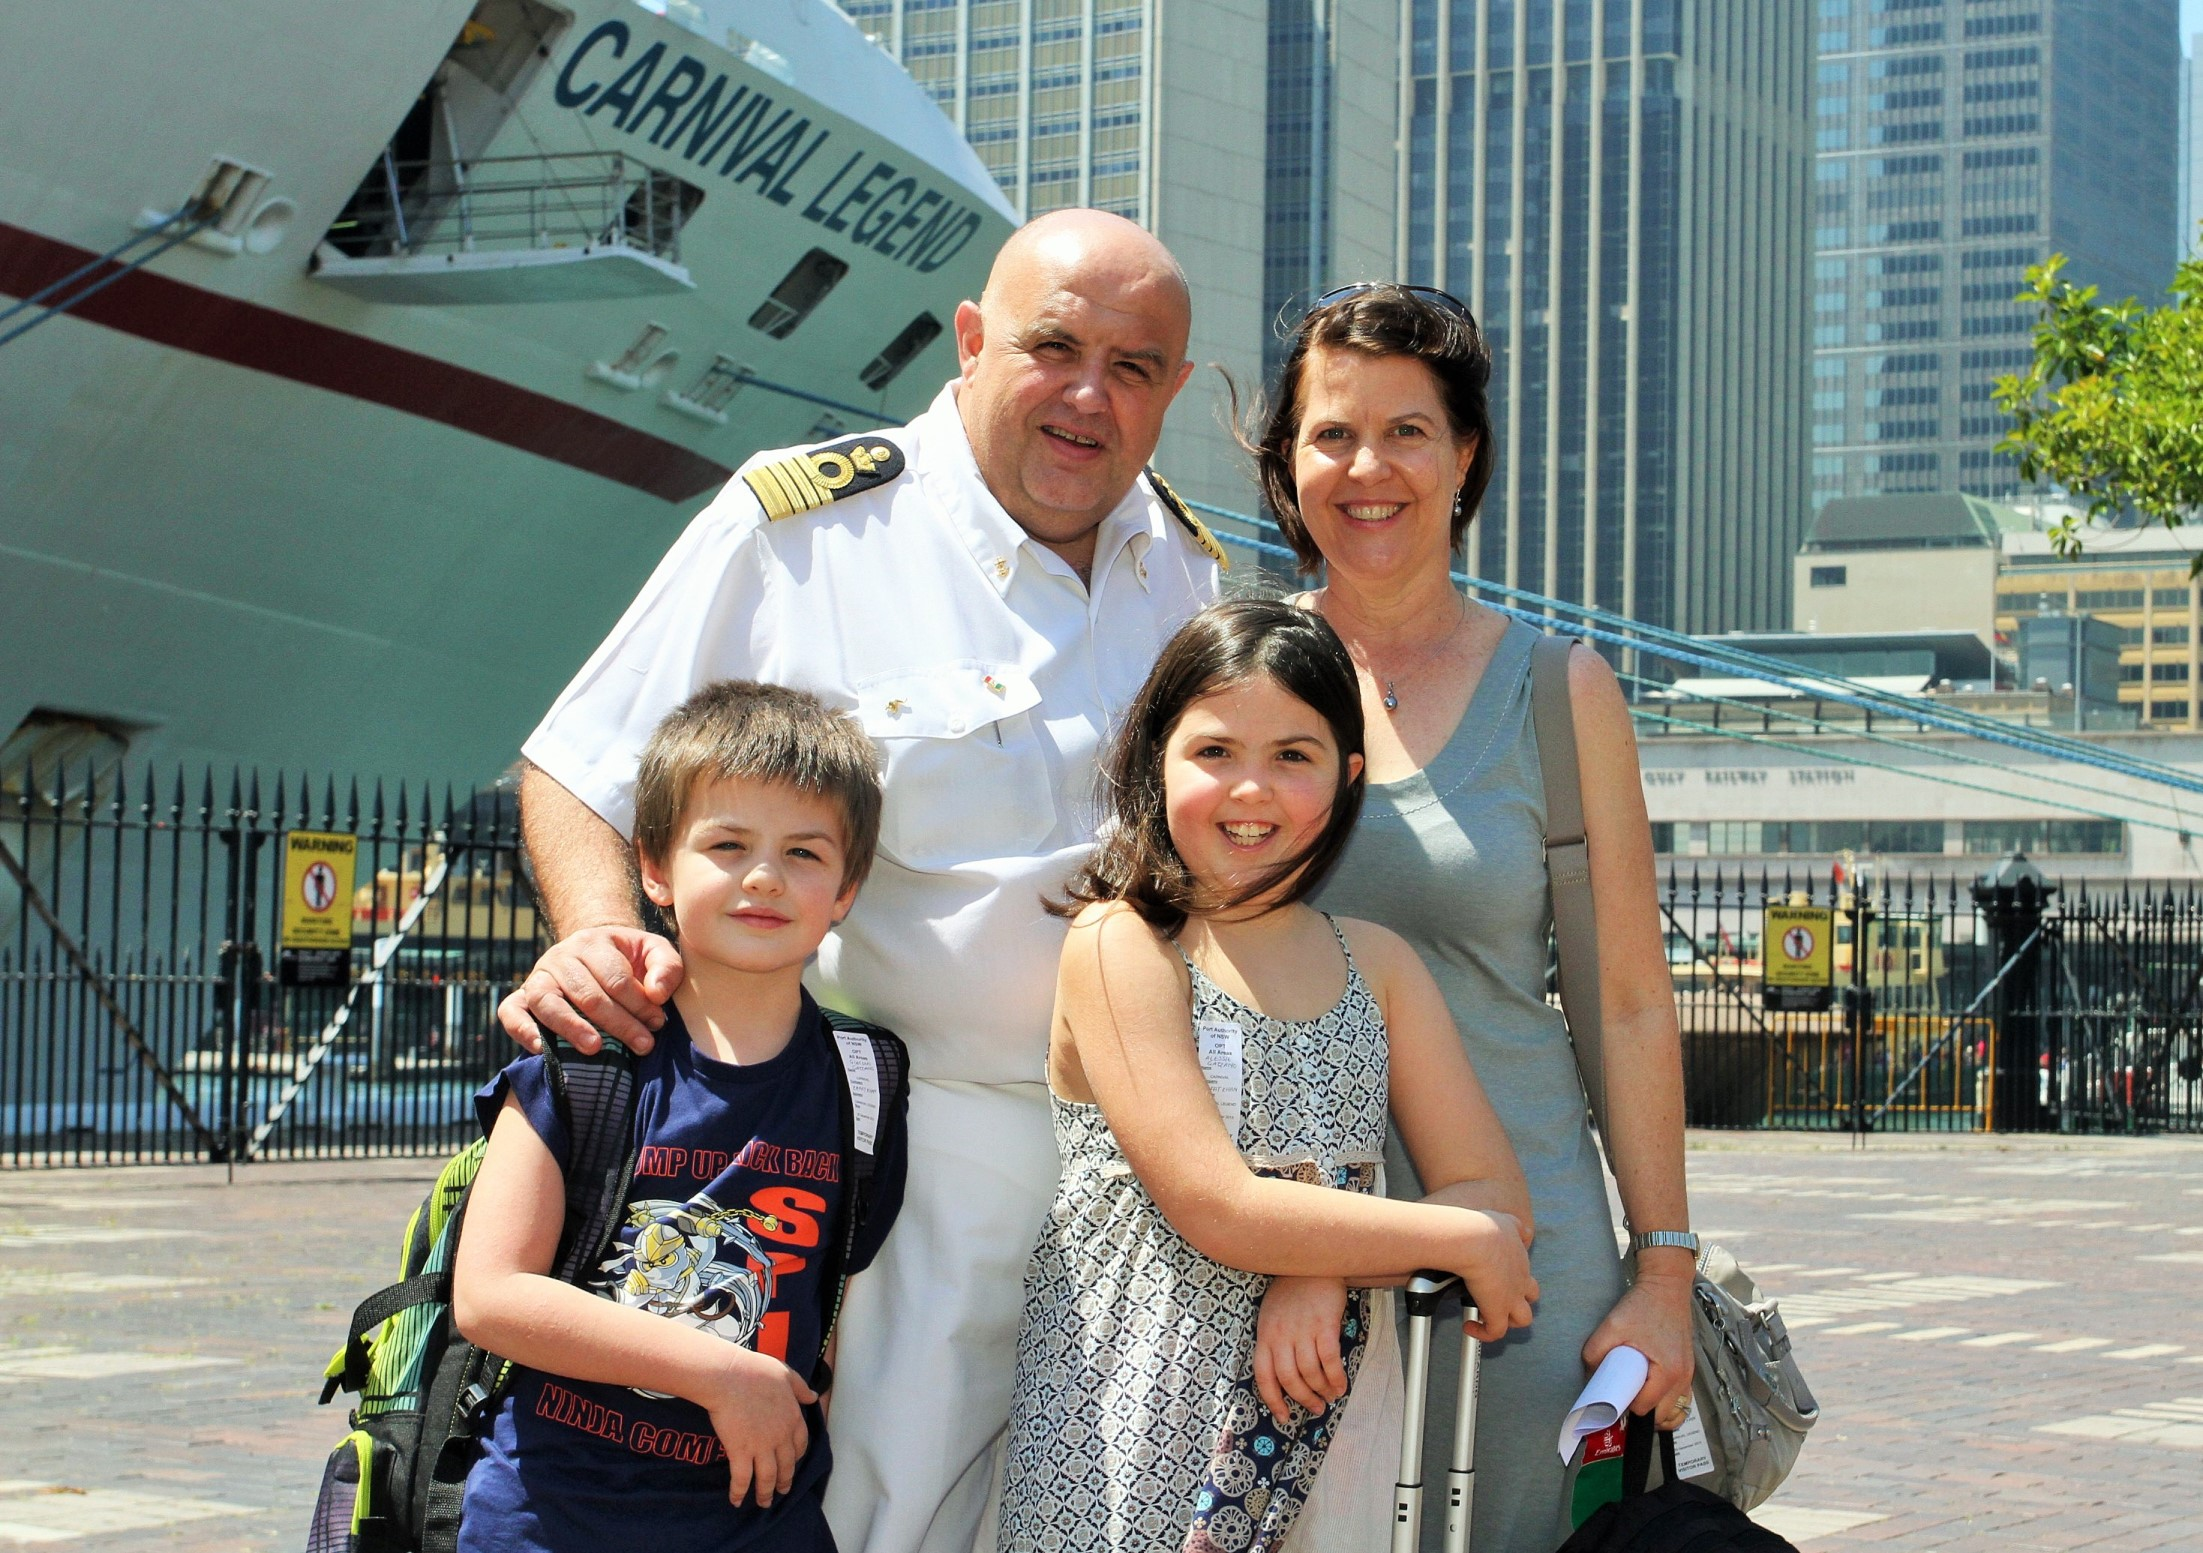 Carnival Legend Captain Guiseppe Gazzano with wife Anne Louise and children Giacomo and Alessia 9